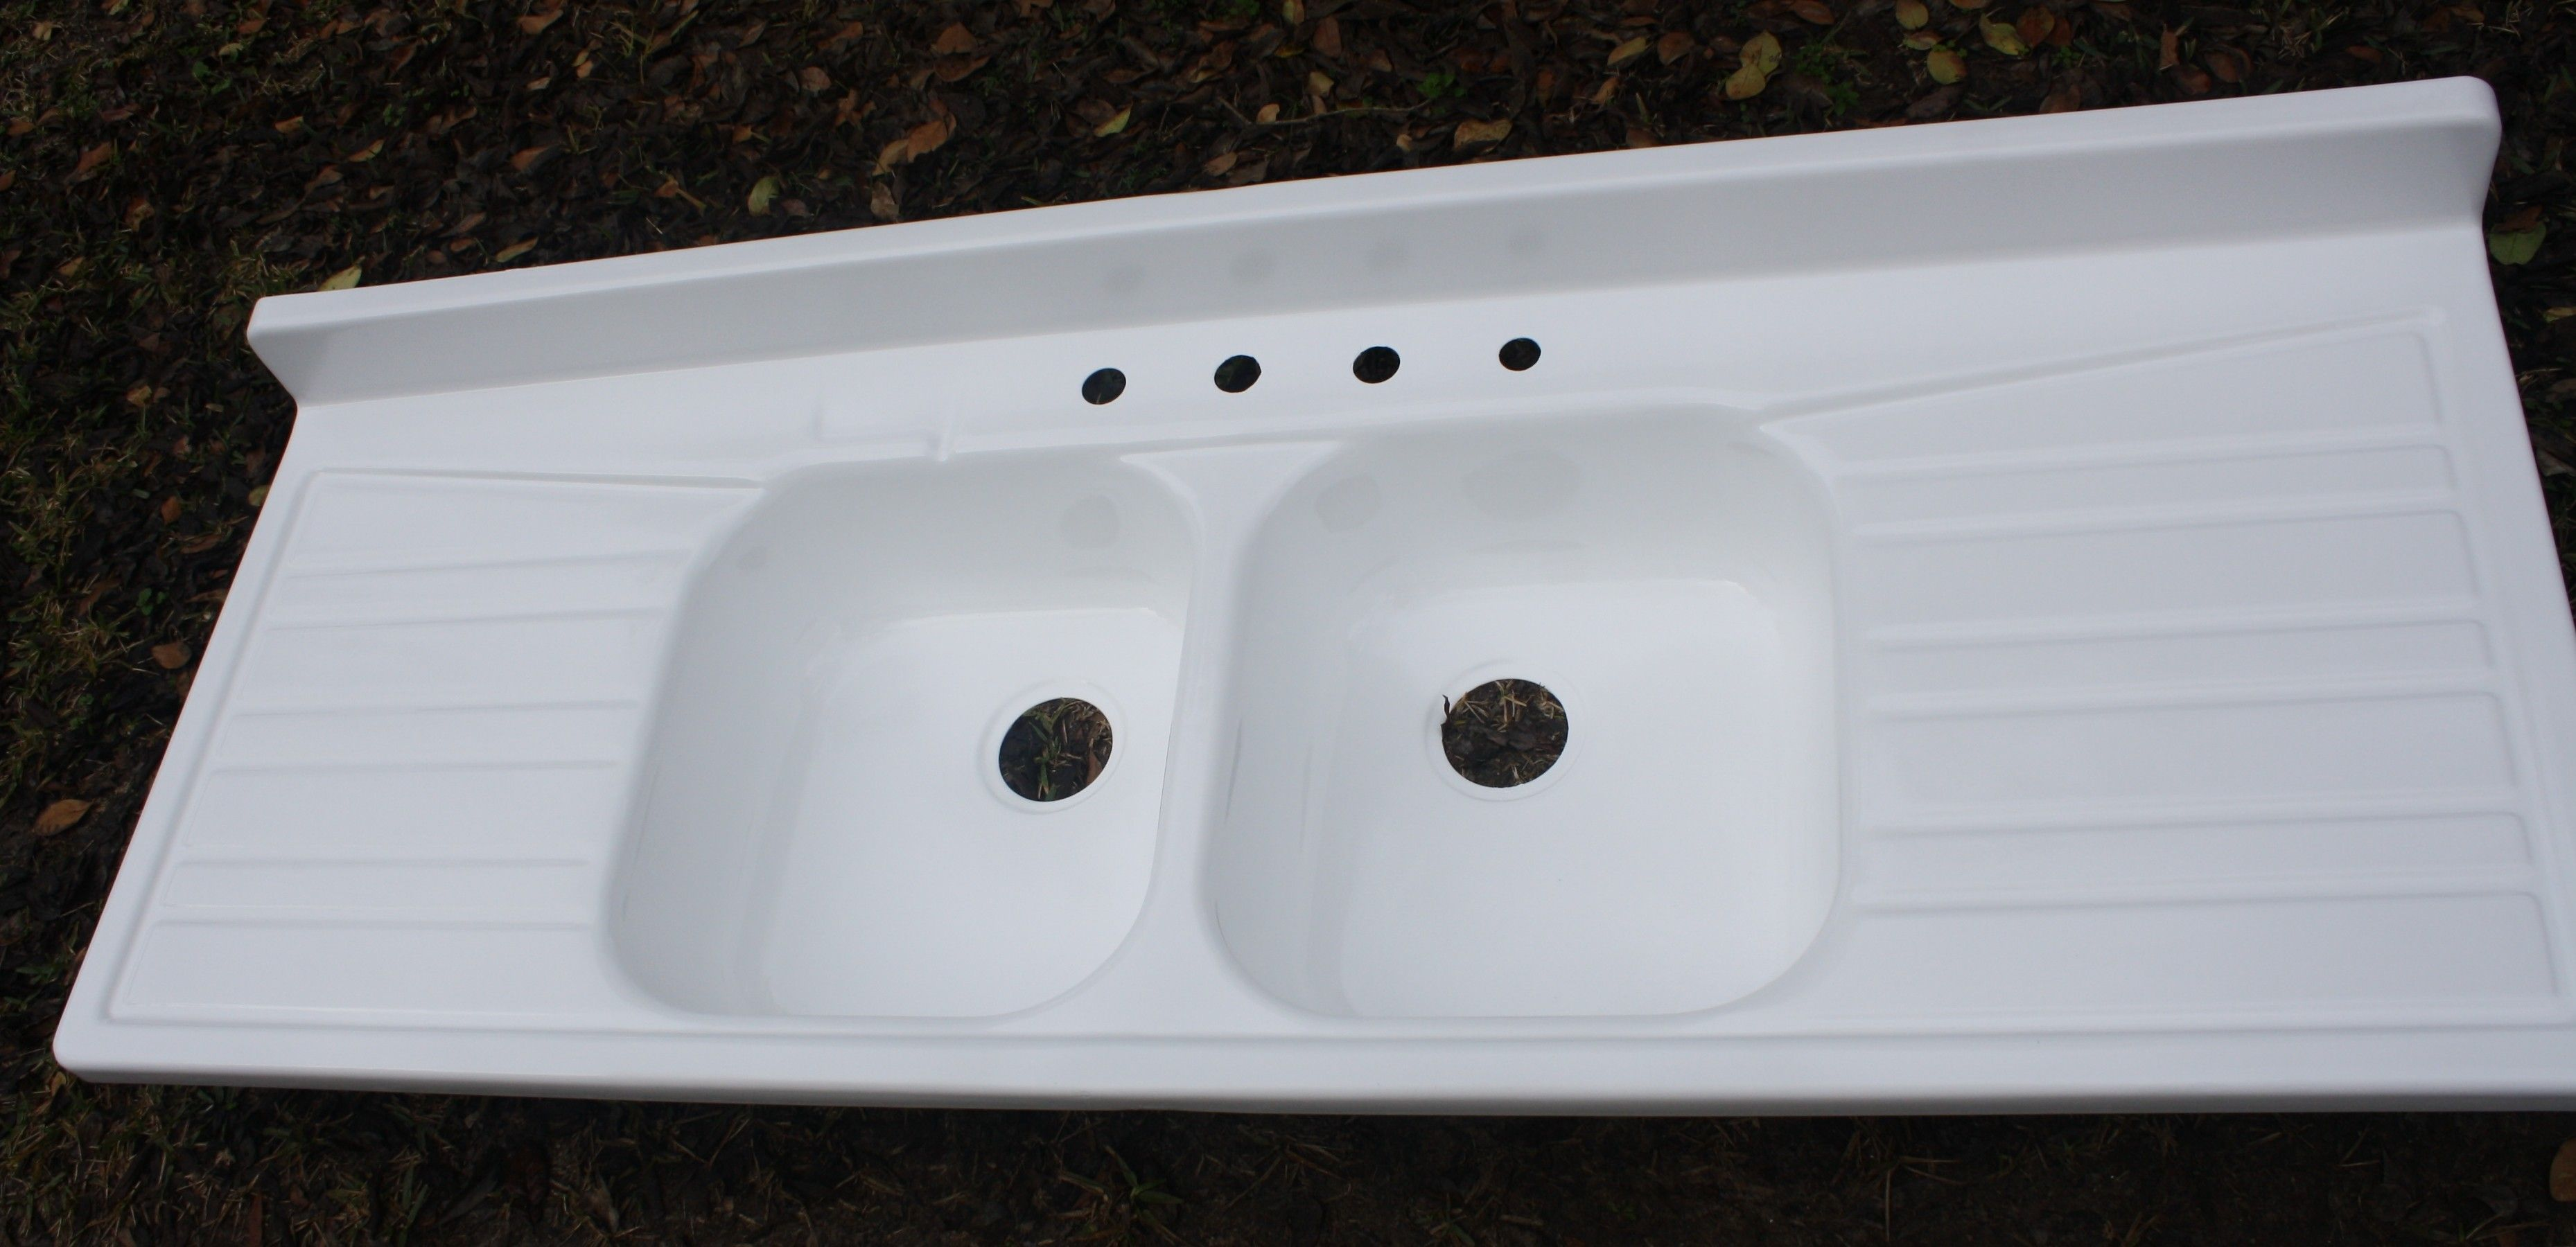 large ceramic or enameled sinks with drain